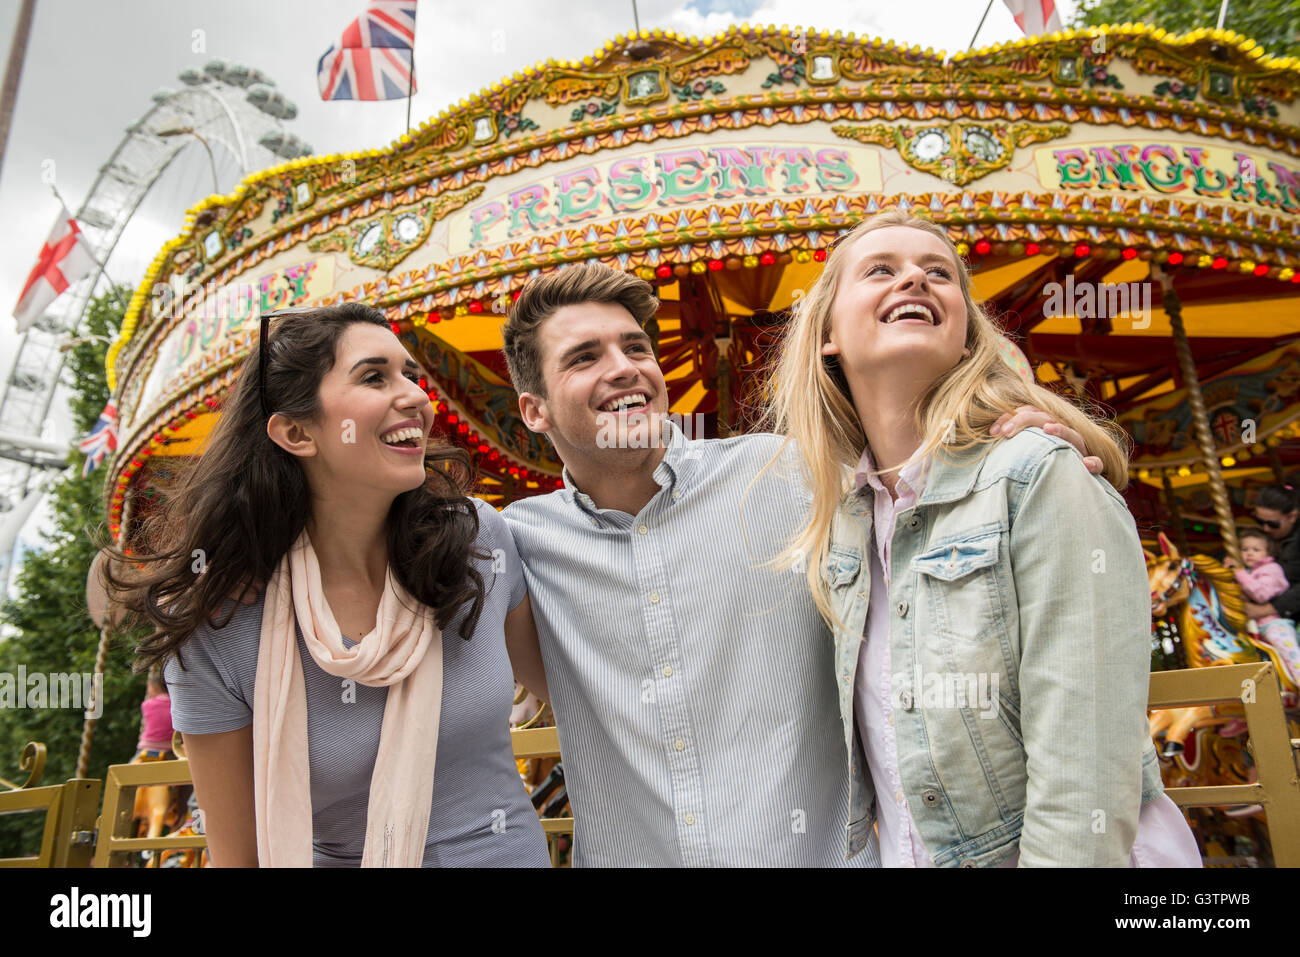 revolving chair thames rolling ride atlantic city carousel on the south bank stock photos and